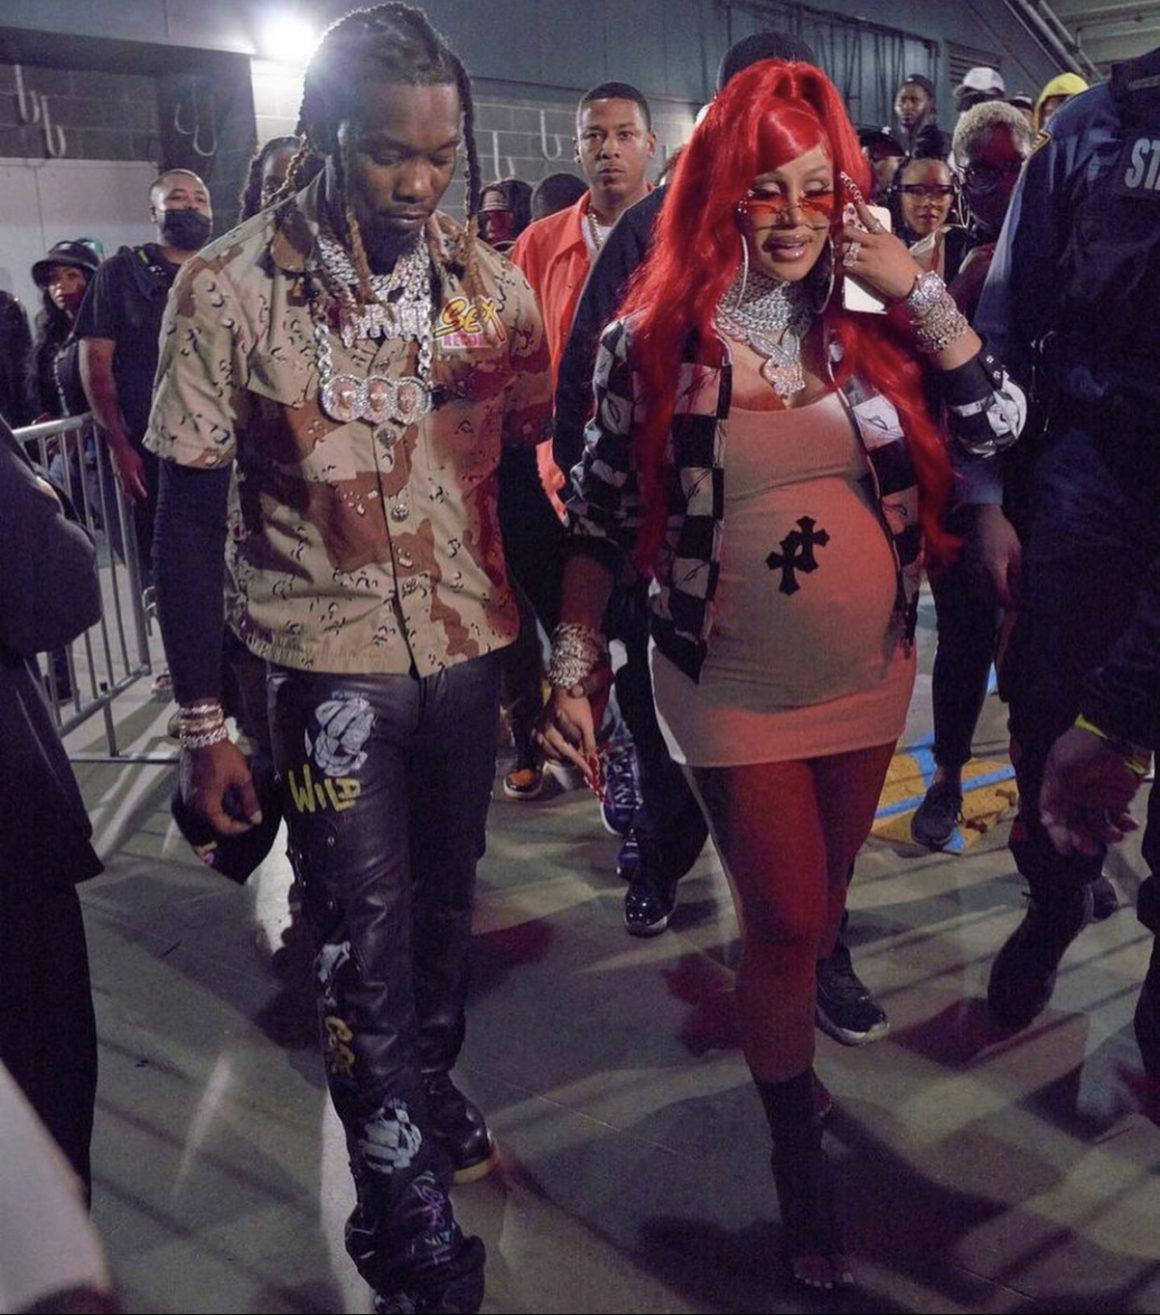 Cardi B Performs at Hot 97's Summer Jam with Migos Wearing Chrome Hearts Look